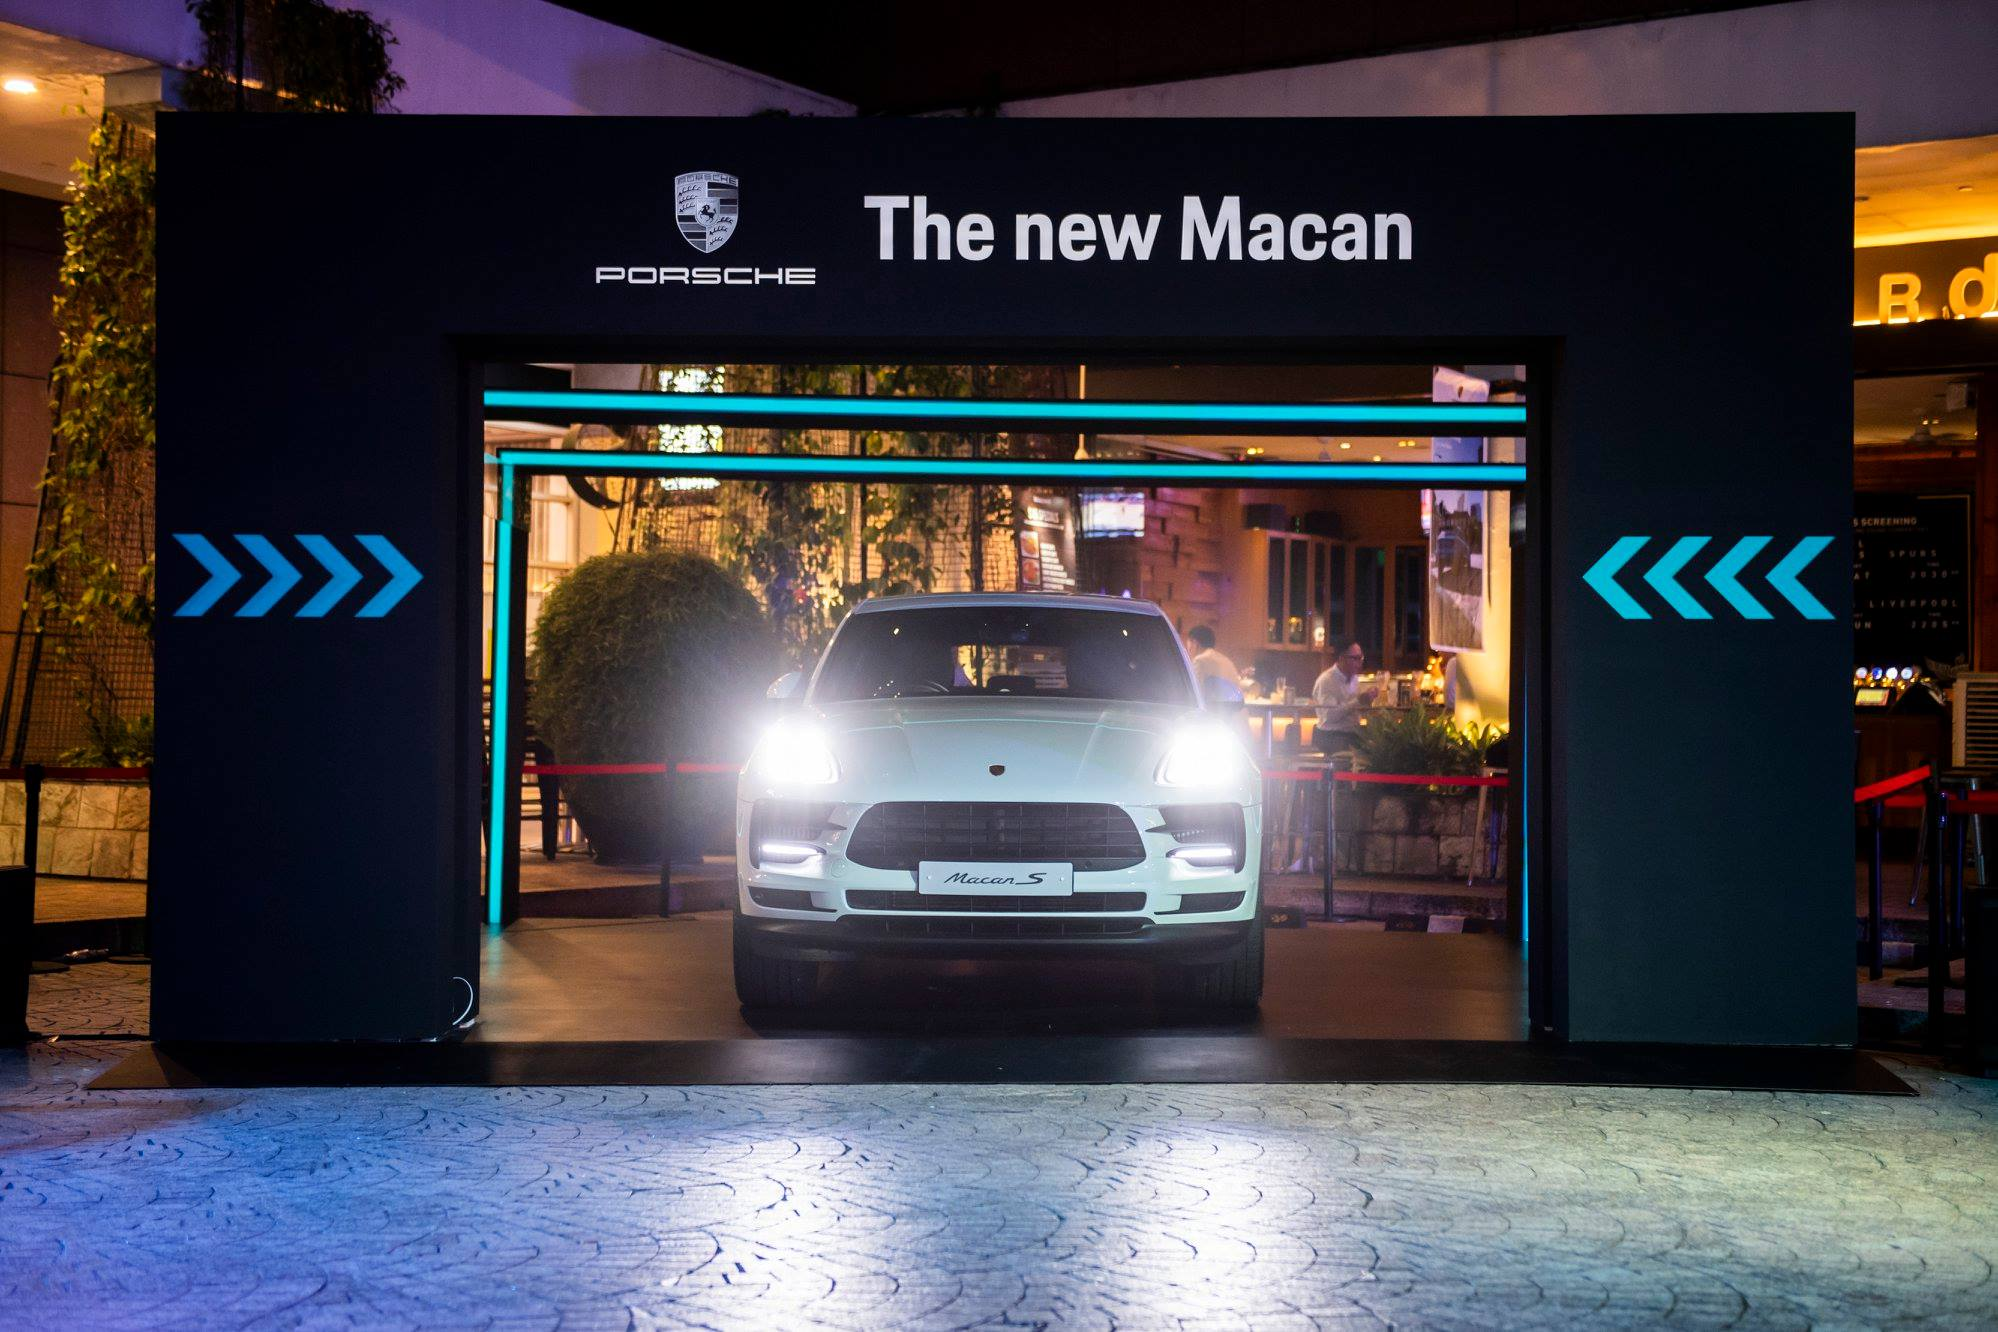 The highlight of the evening was the unveiling of the new Porsche Macan S